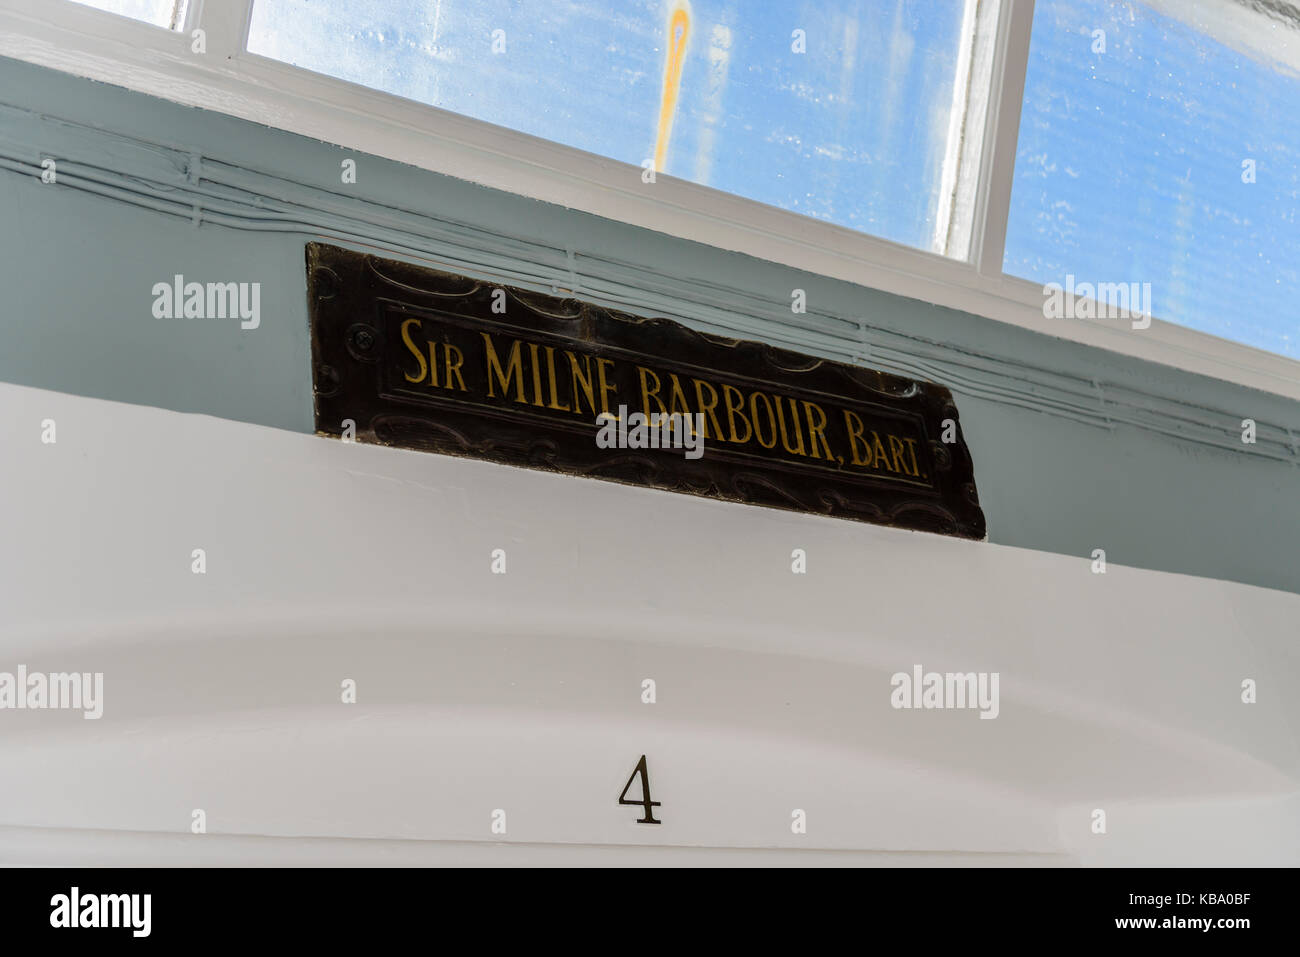 Ward 4 (Sir Milne Barbour, Bart) at the oldVictorian corridor, Royal Victoria Hospital, Belfast. - Stock Image